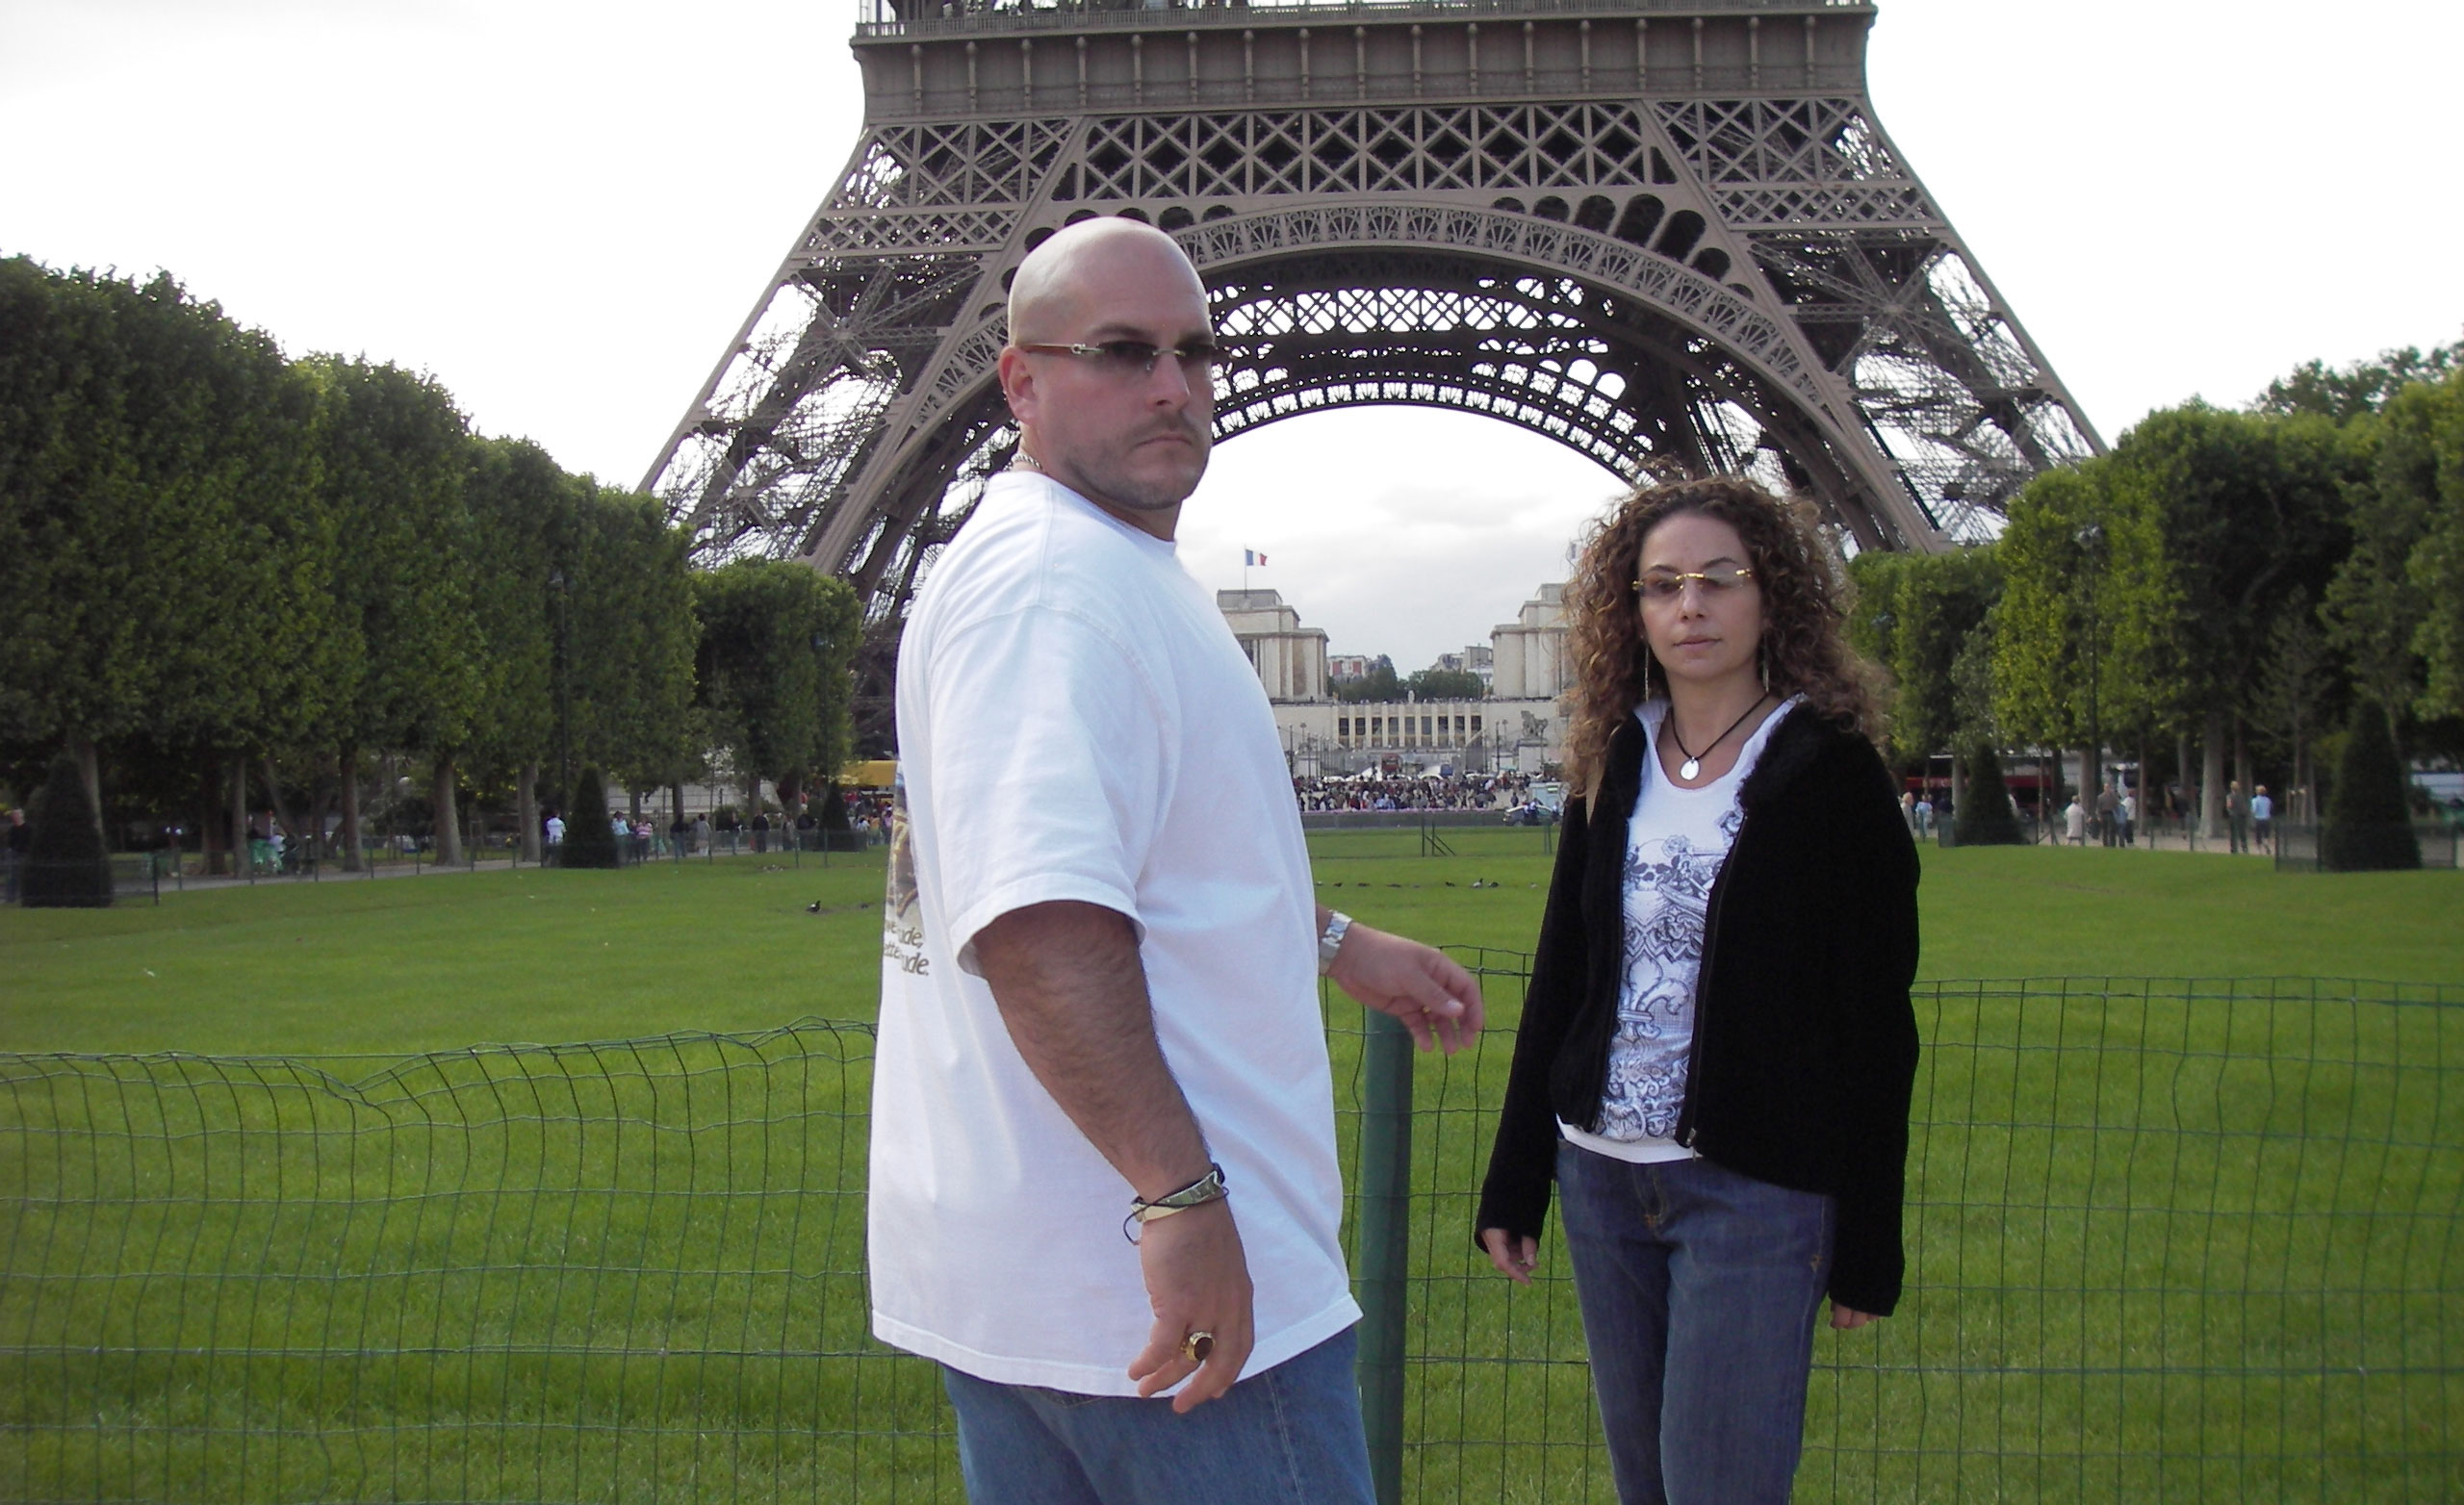 Lori and Michael in Paris